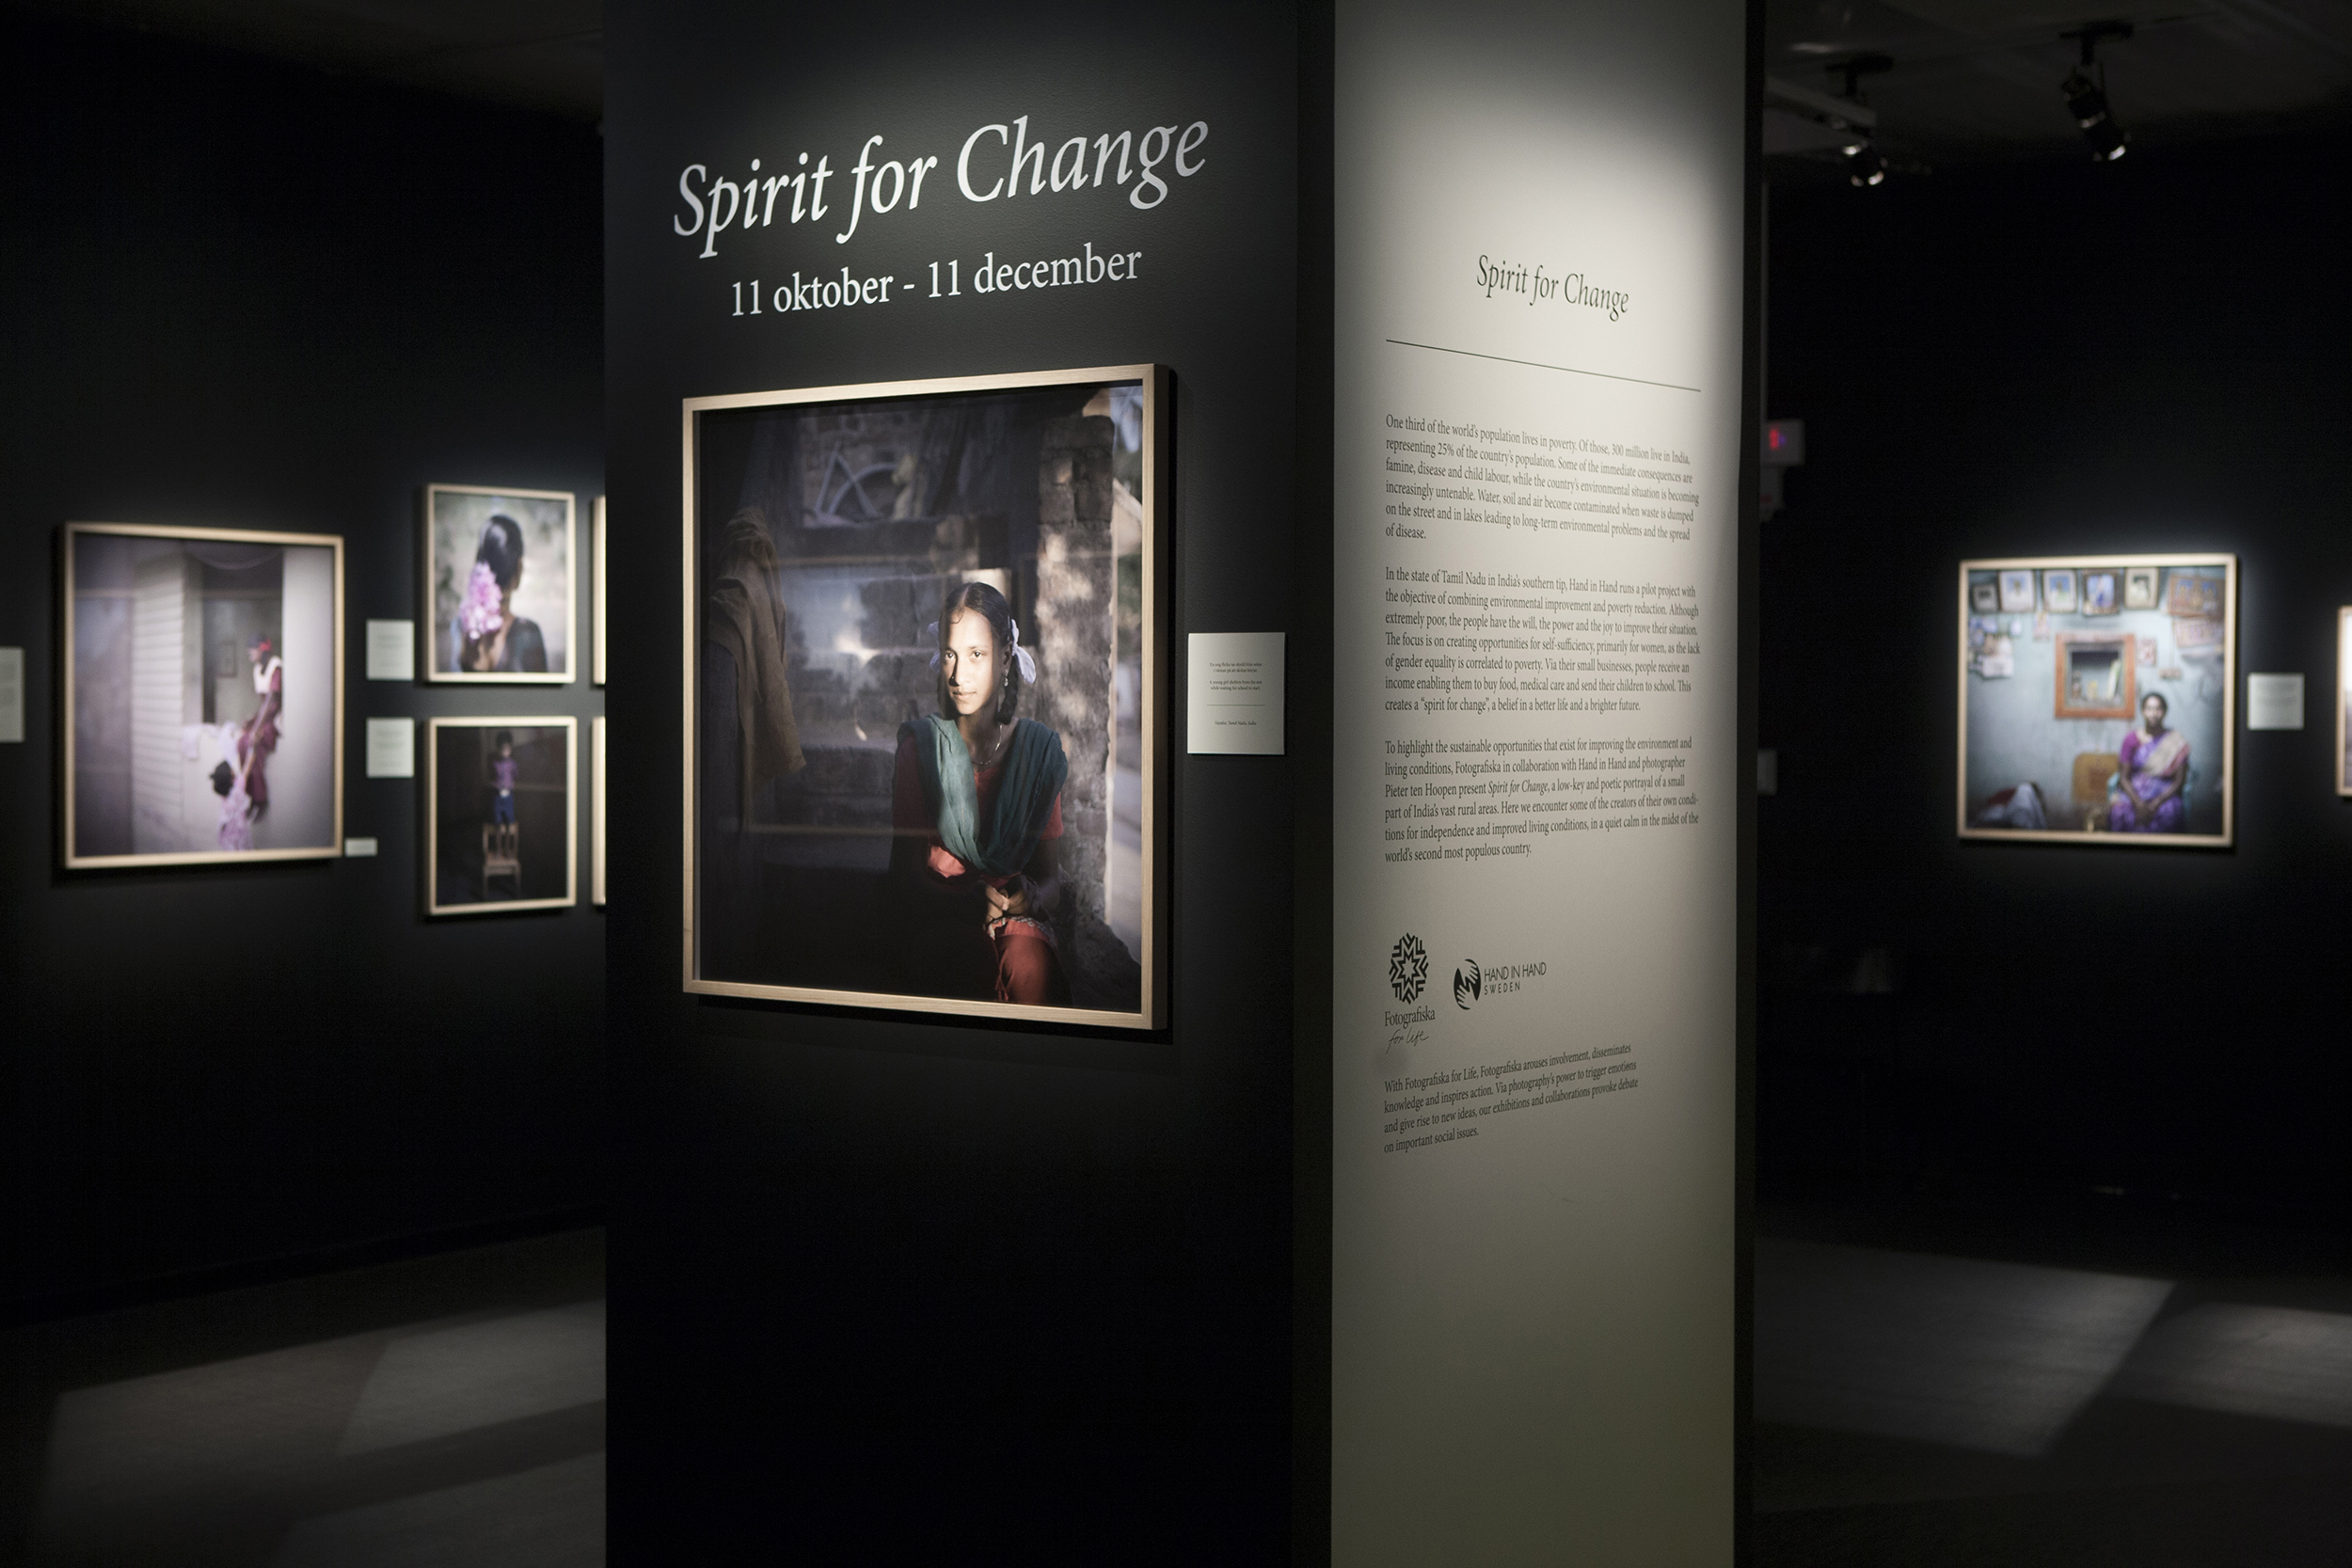 Spirit for Change / Hand in Hand, Fotografiska   When people in India create jobs for themselves by transforming waste products into new raw materials many life- and hope-giving processes are triggered. It creates a Spirit for Change, a belief in a different life and a brighter future. This is the topic of the Fotografiska for Life exhibition, Spirit for Change, showcasing photographer Pieter ten Hoopen's film and images of Indian entrepreneurs in the area of sustainable environmental work.